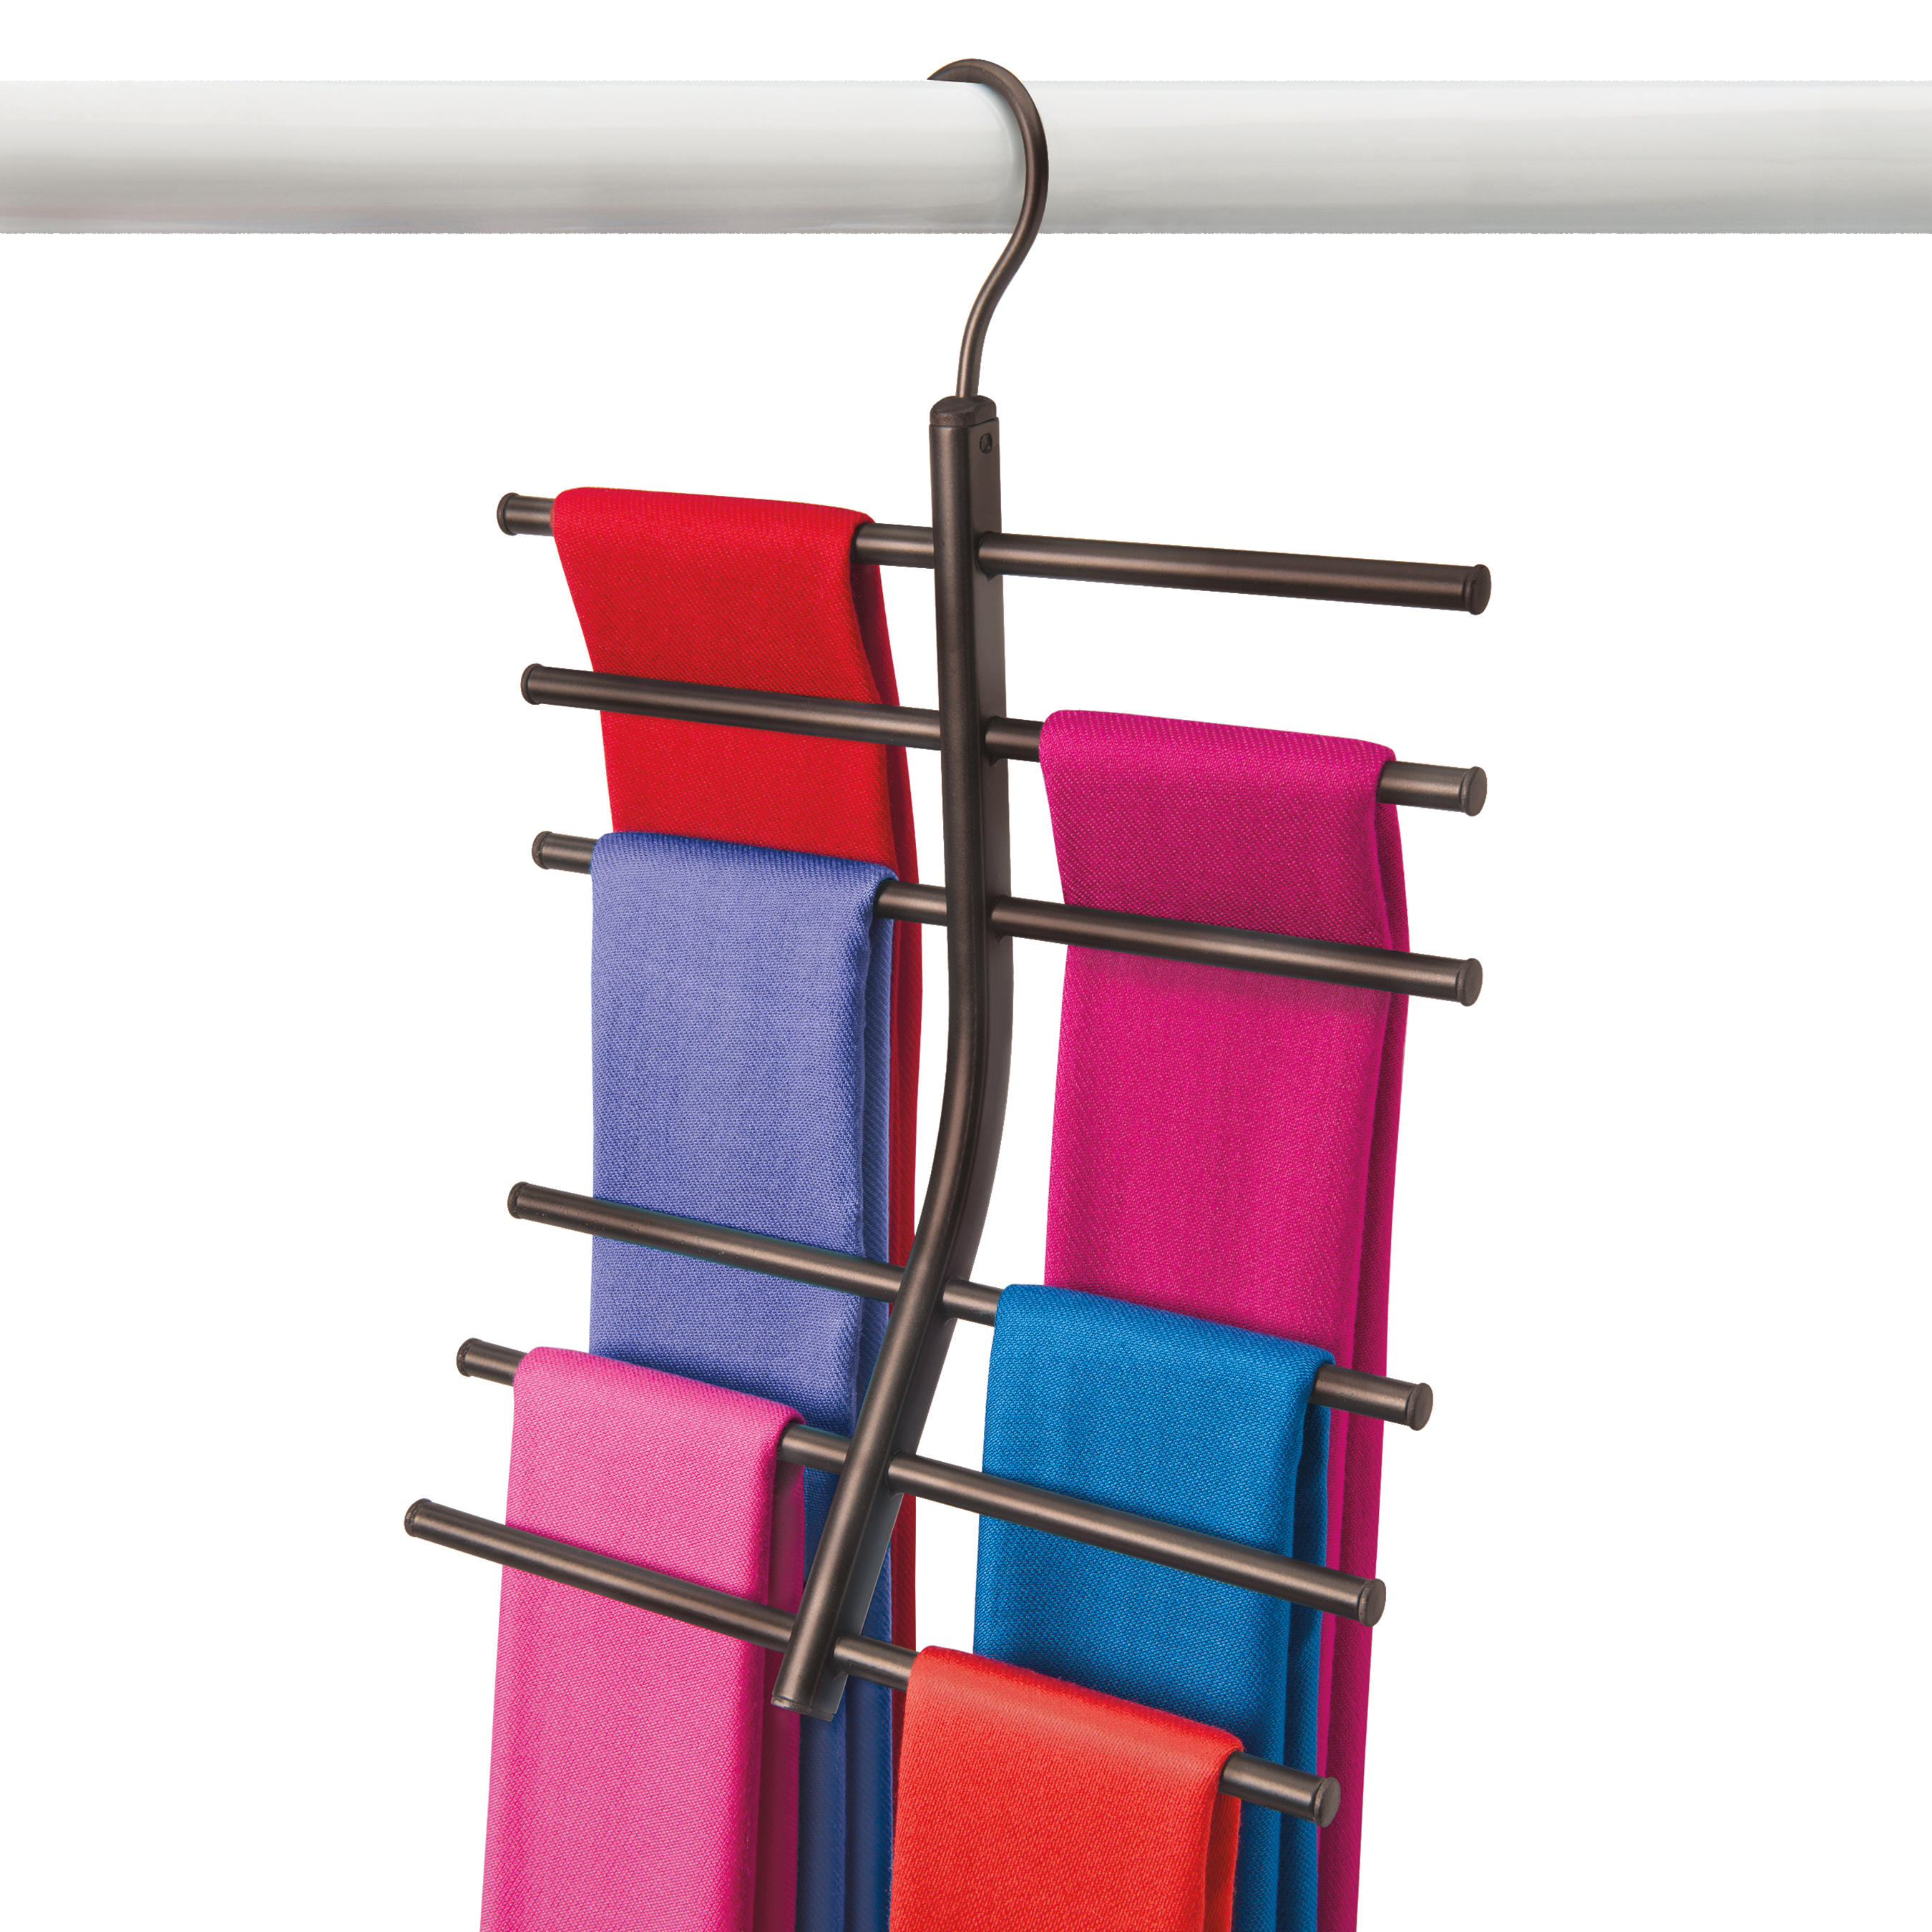 Curved Closet Rod Delectable The Curved Tiered Design Keeps Scarves Separate And Wrinklefree Inspiration